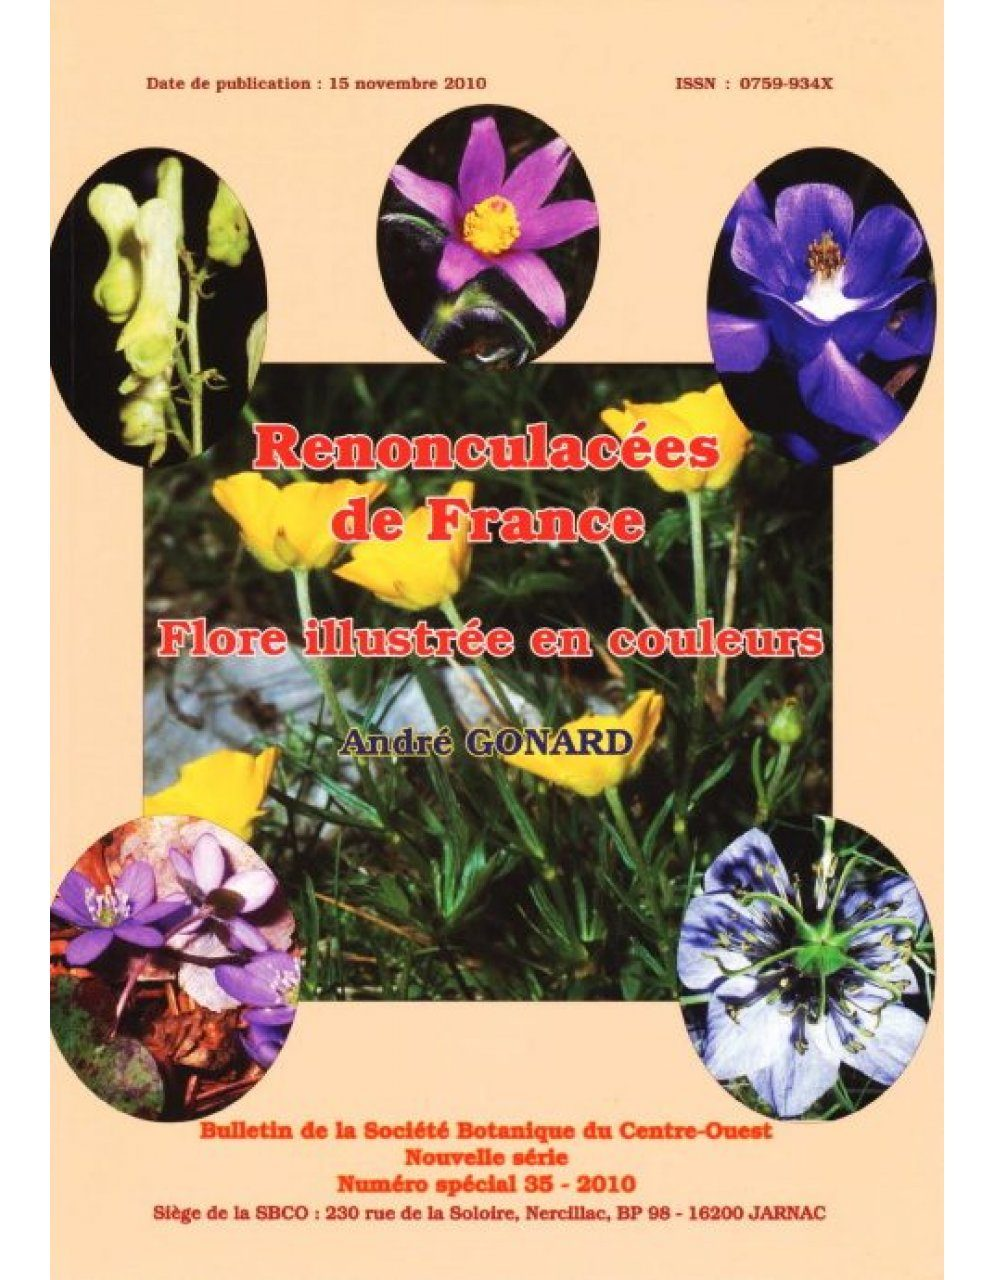 Les Renonculacées de France [The Ranunculaceae of France]